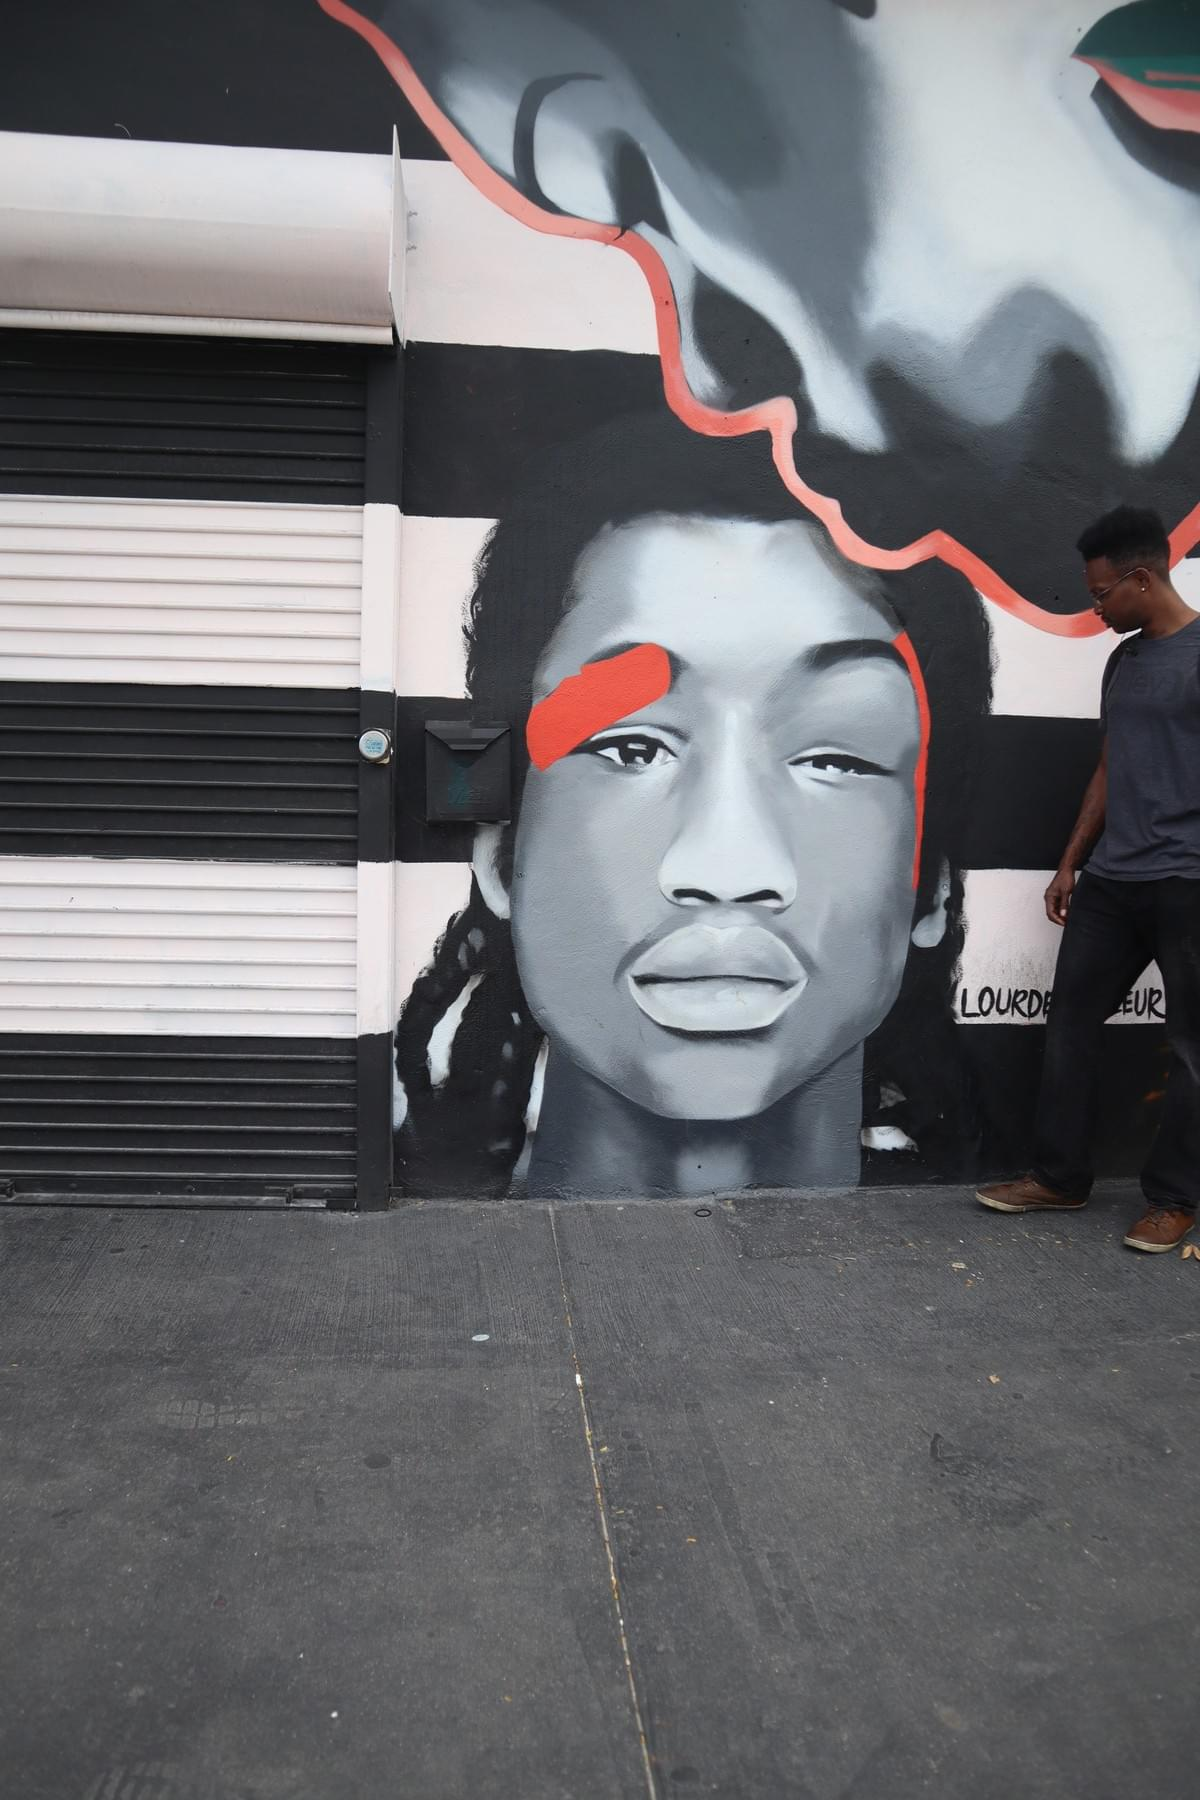 Wynwood walls street art of woman kissing the heads boy with braids with man walking by